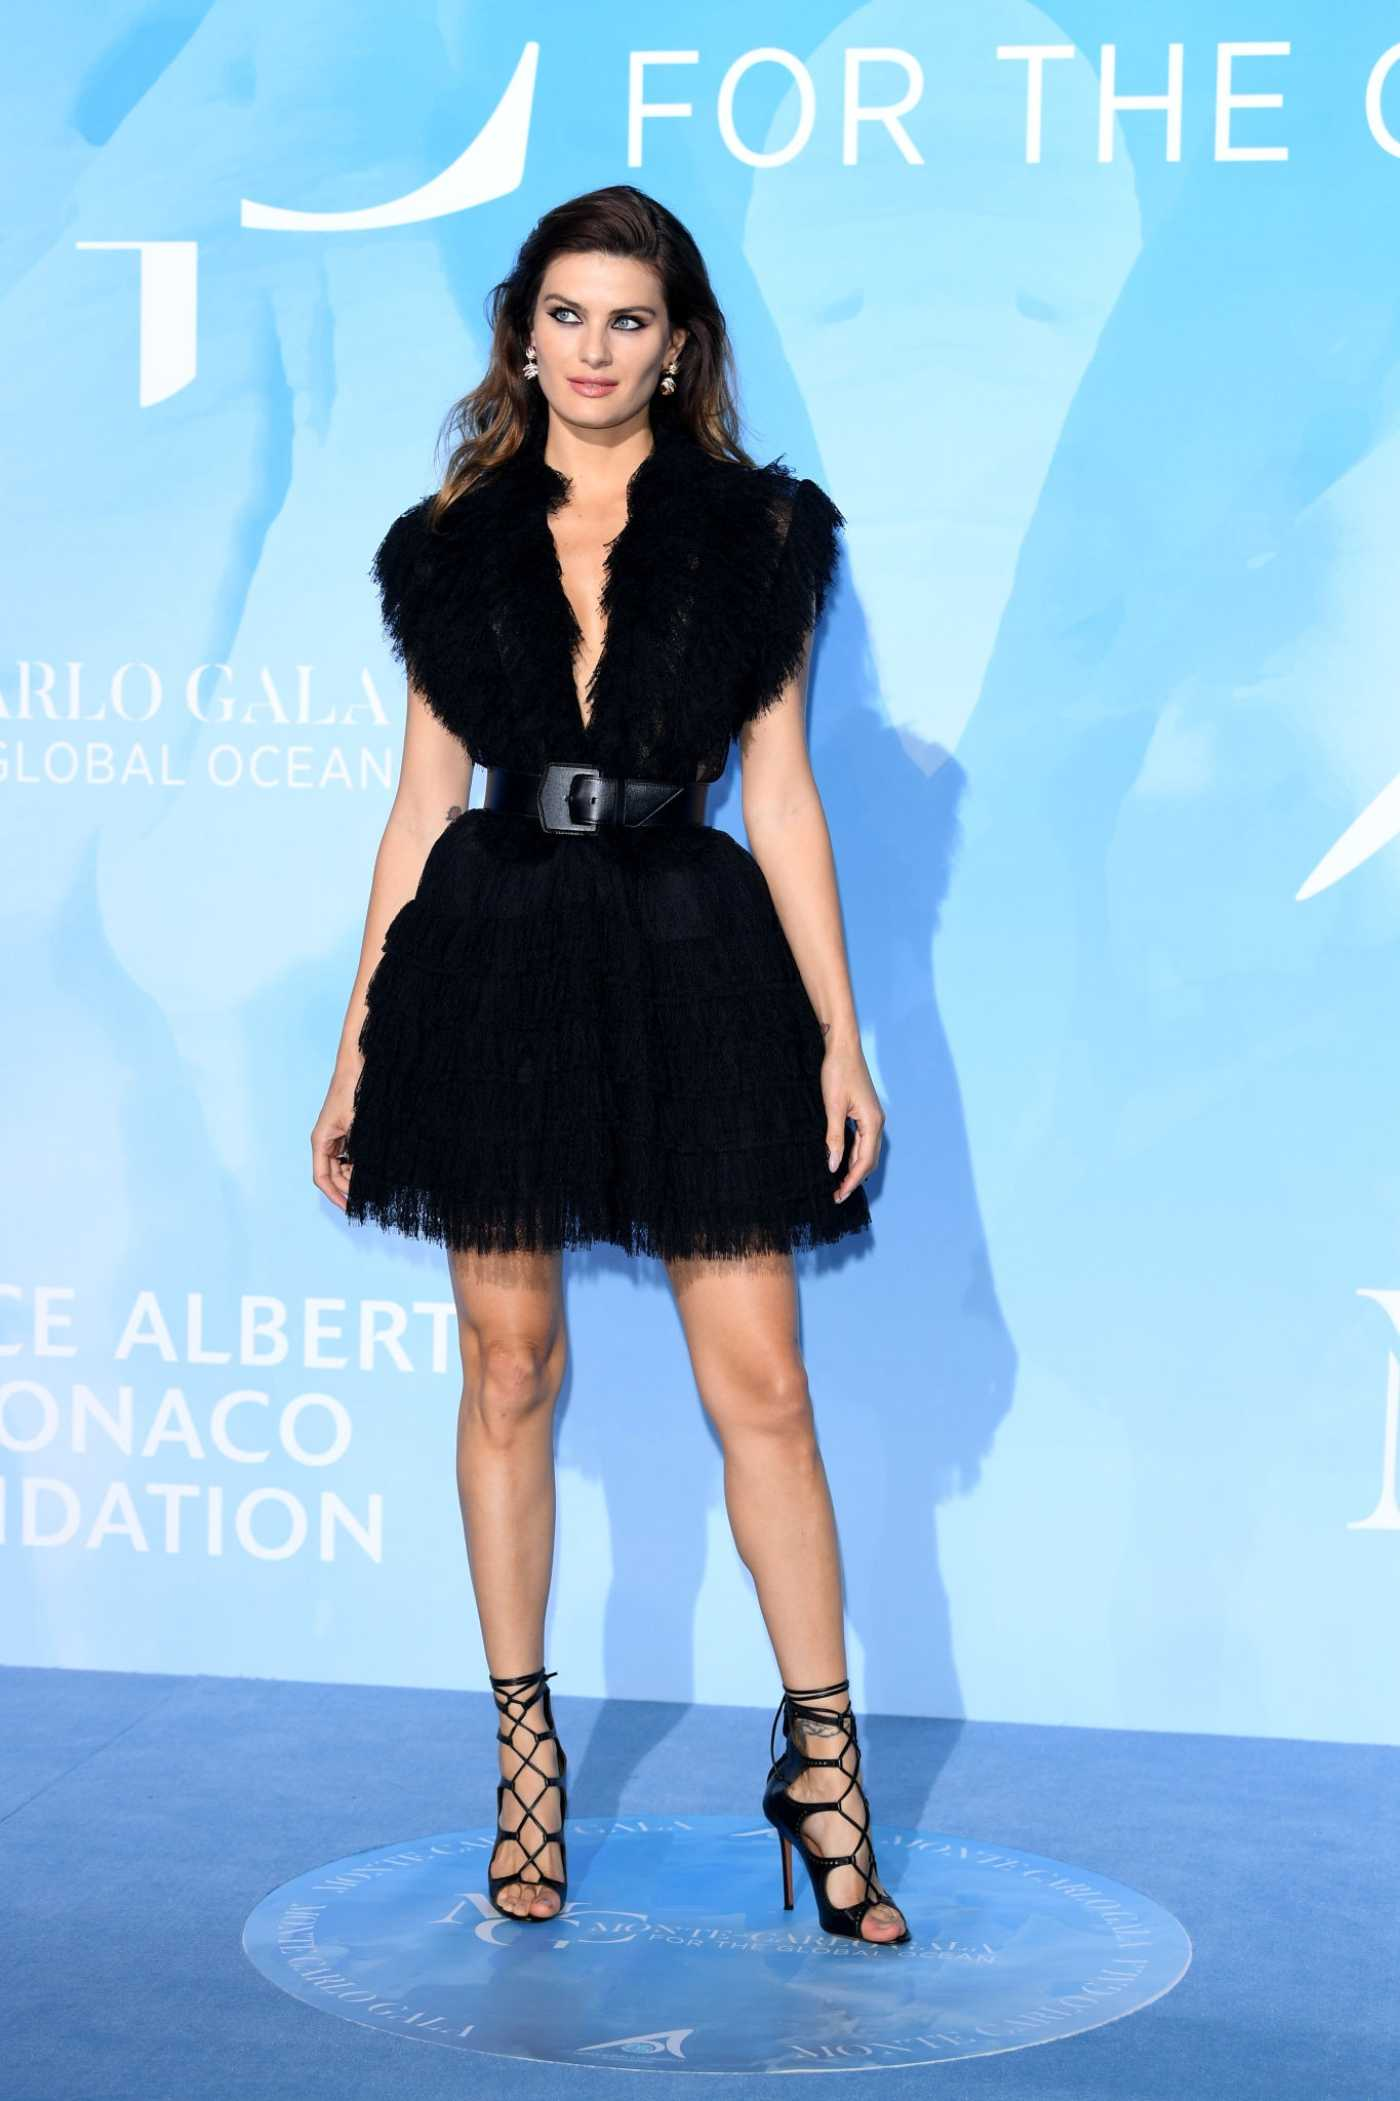 Isabeli Fontana Attends the Gala for the Global Ocean in Monte-Carlo 09/26/2019